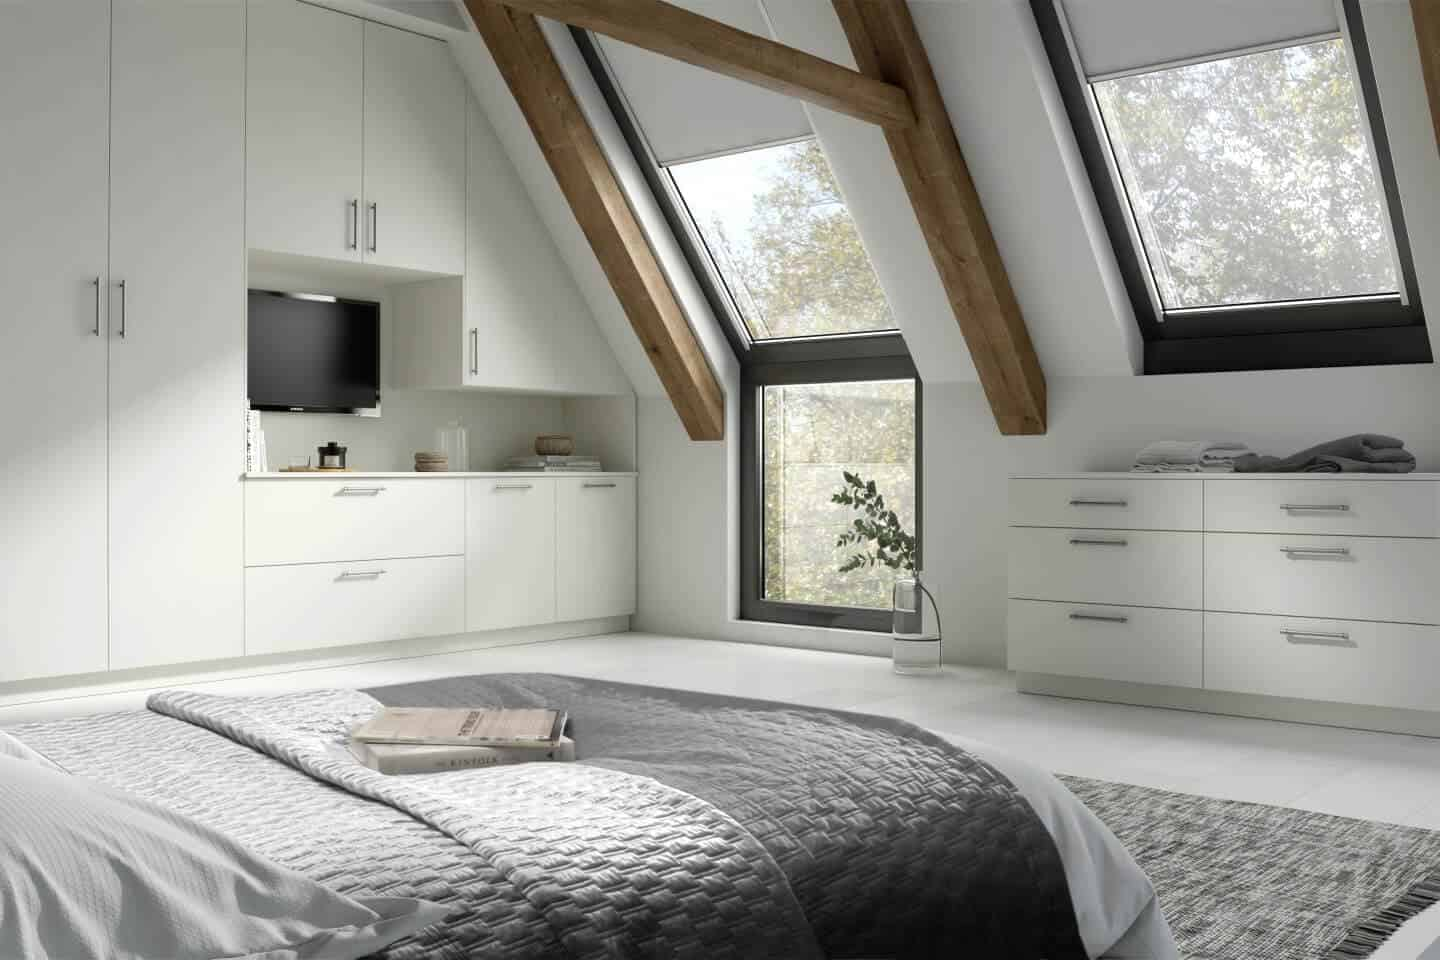 white bedroom with windows on the ceiling